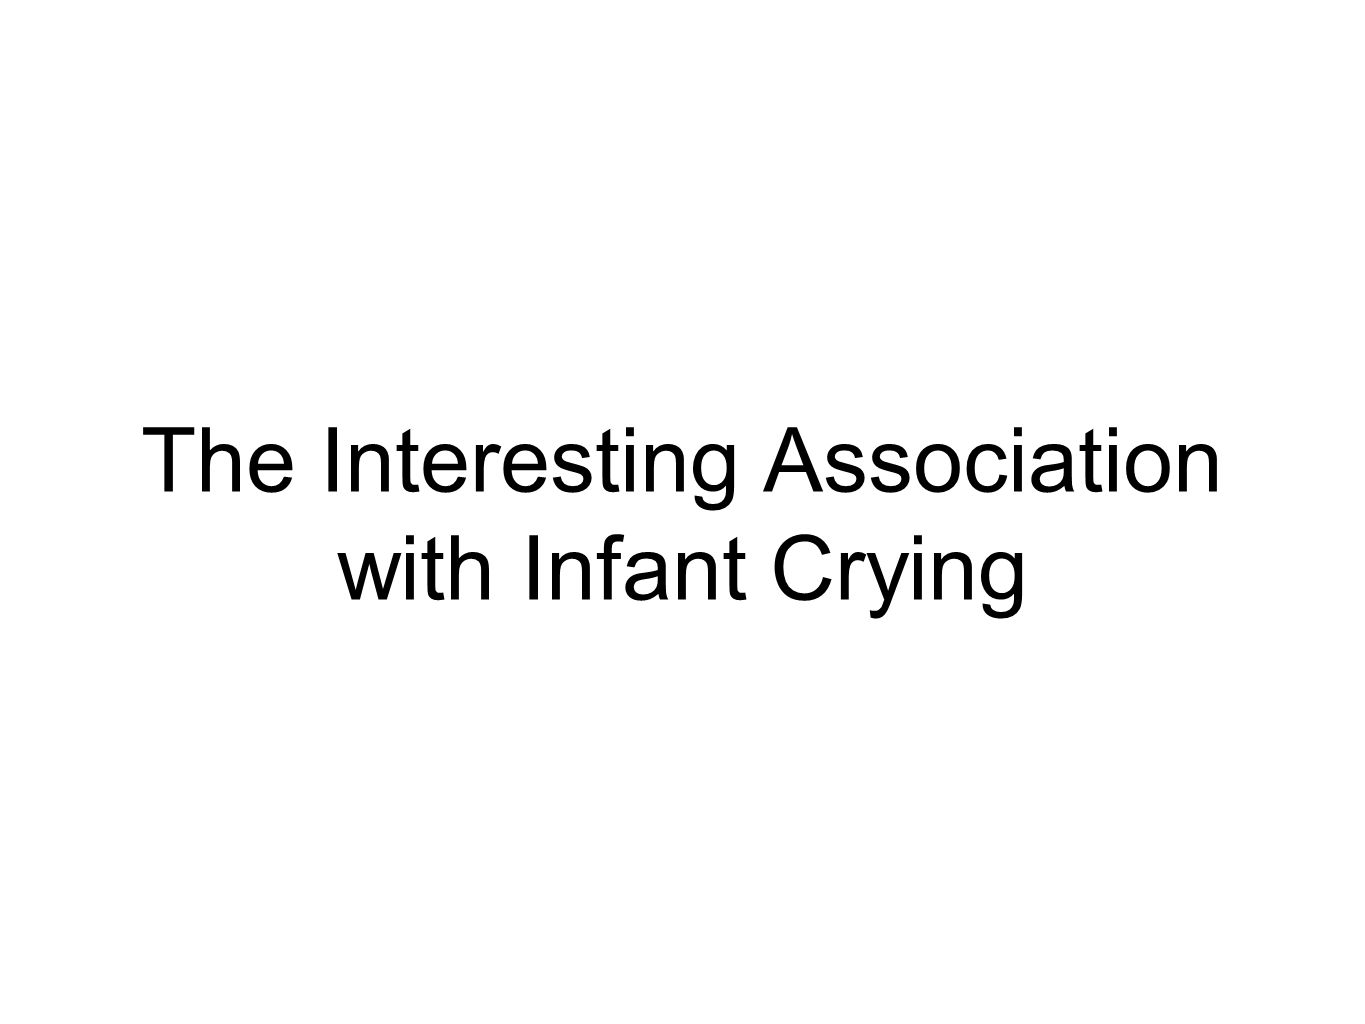 The Interesting Association with Infant Crying